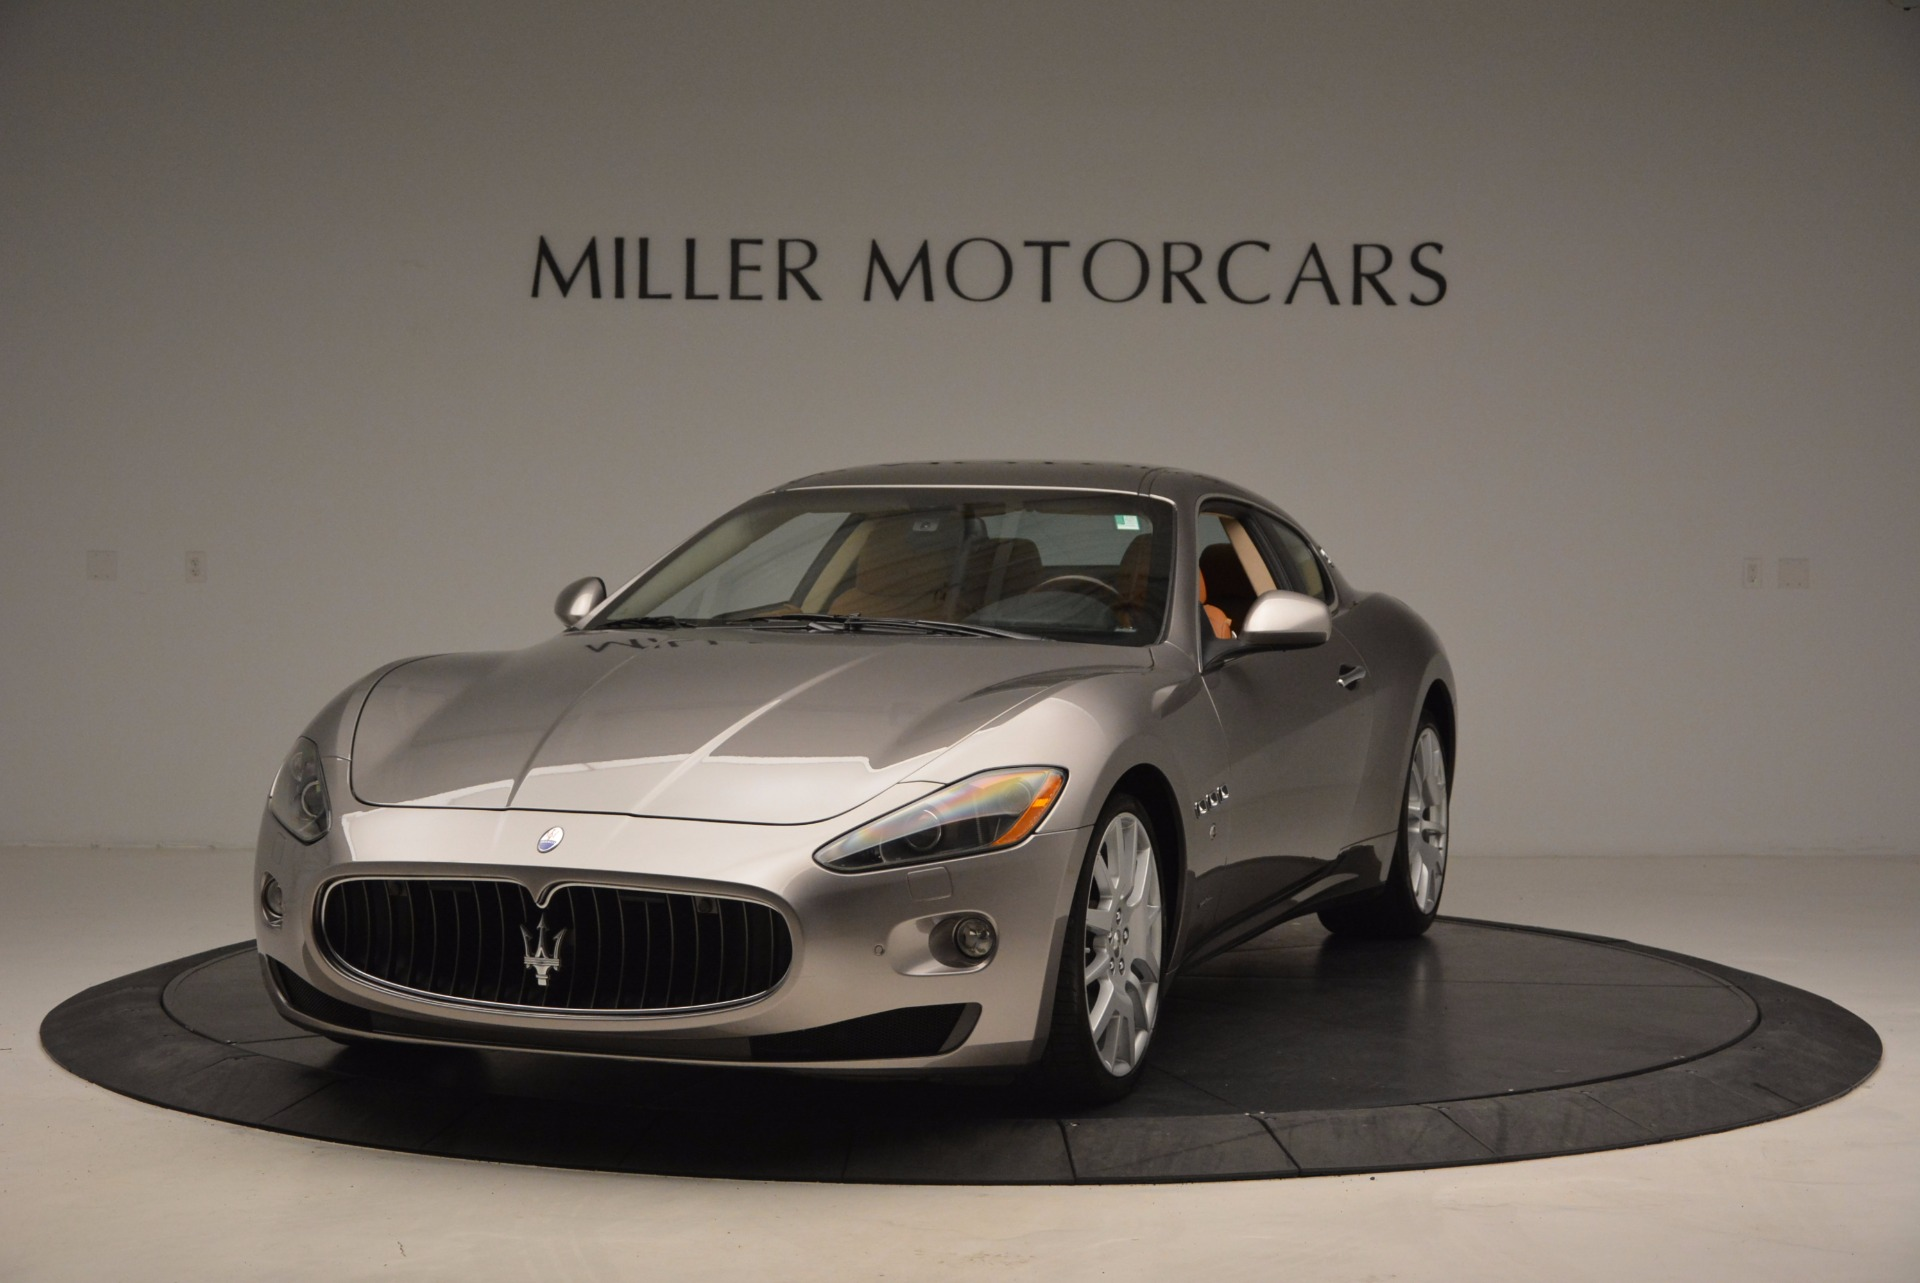 Used 2009 Maserati GranTurismo S for sale Sold at Pagani of Greenwich in Greenwich CT 06830 1